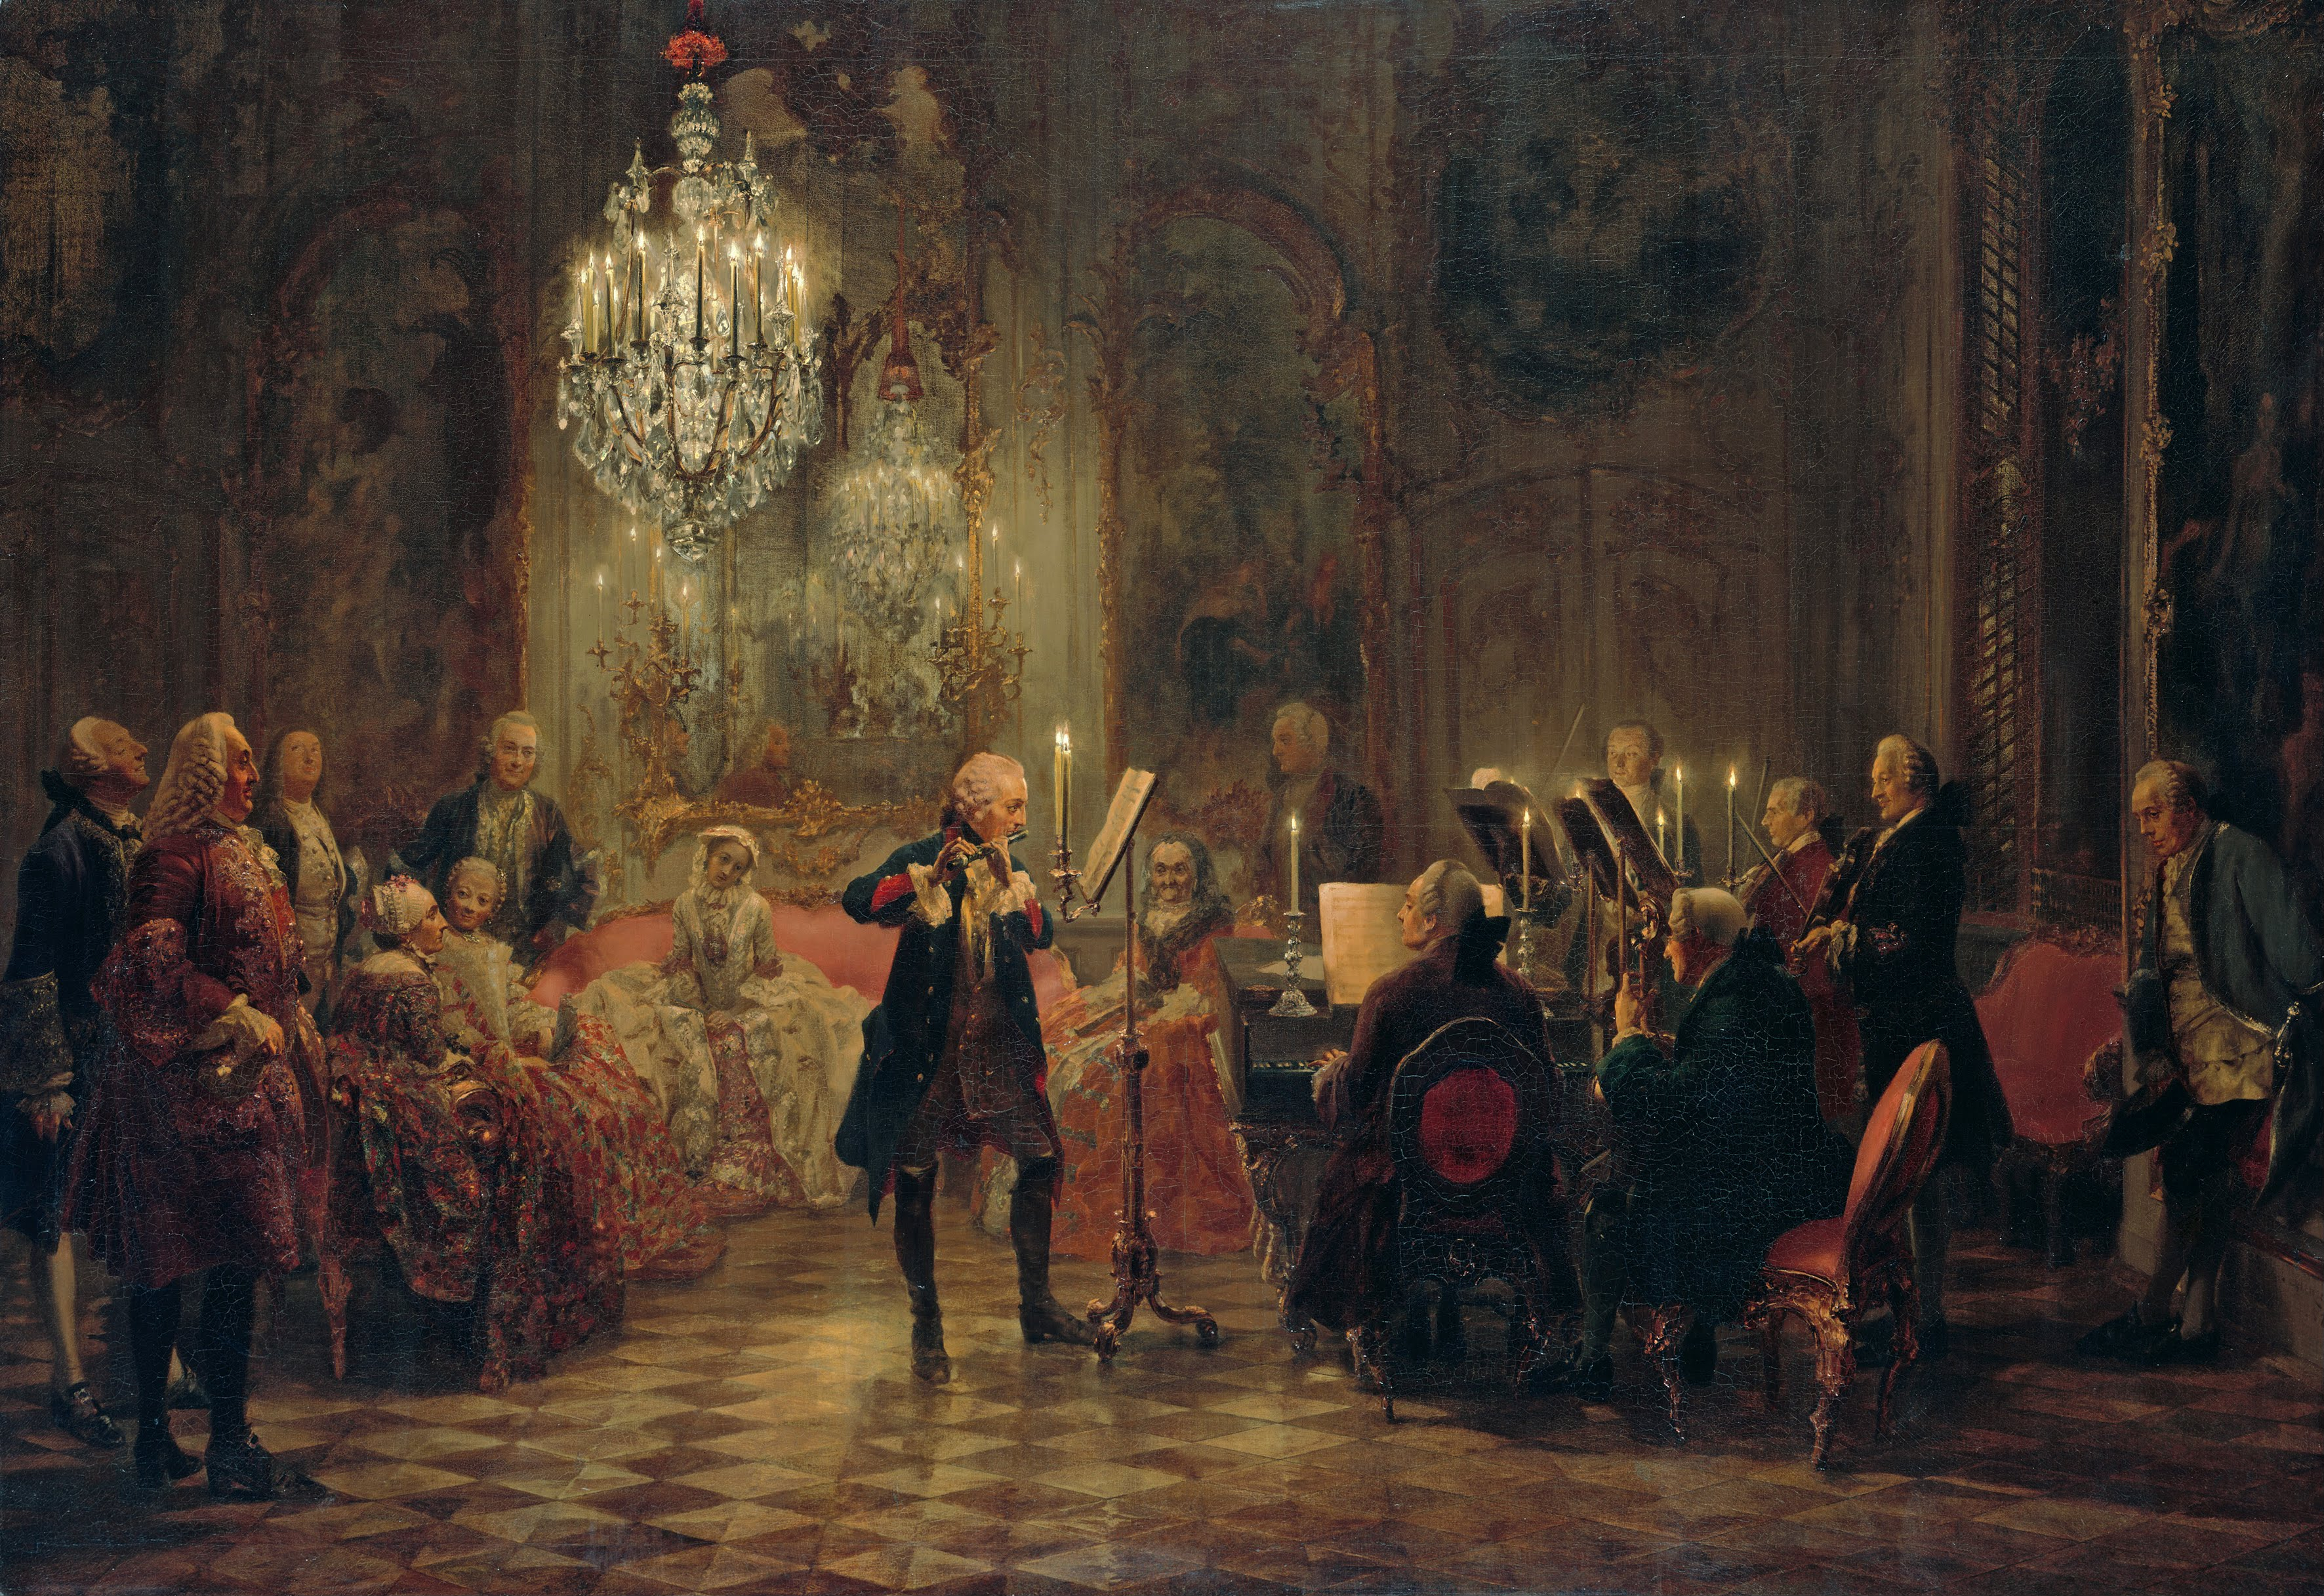 Music and dance - Q-files Encyclopedia